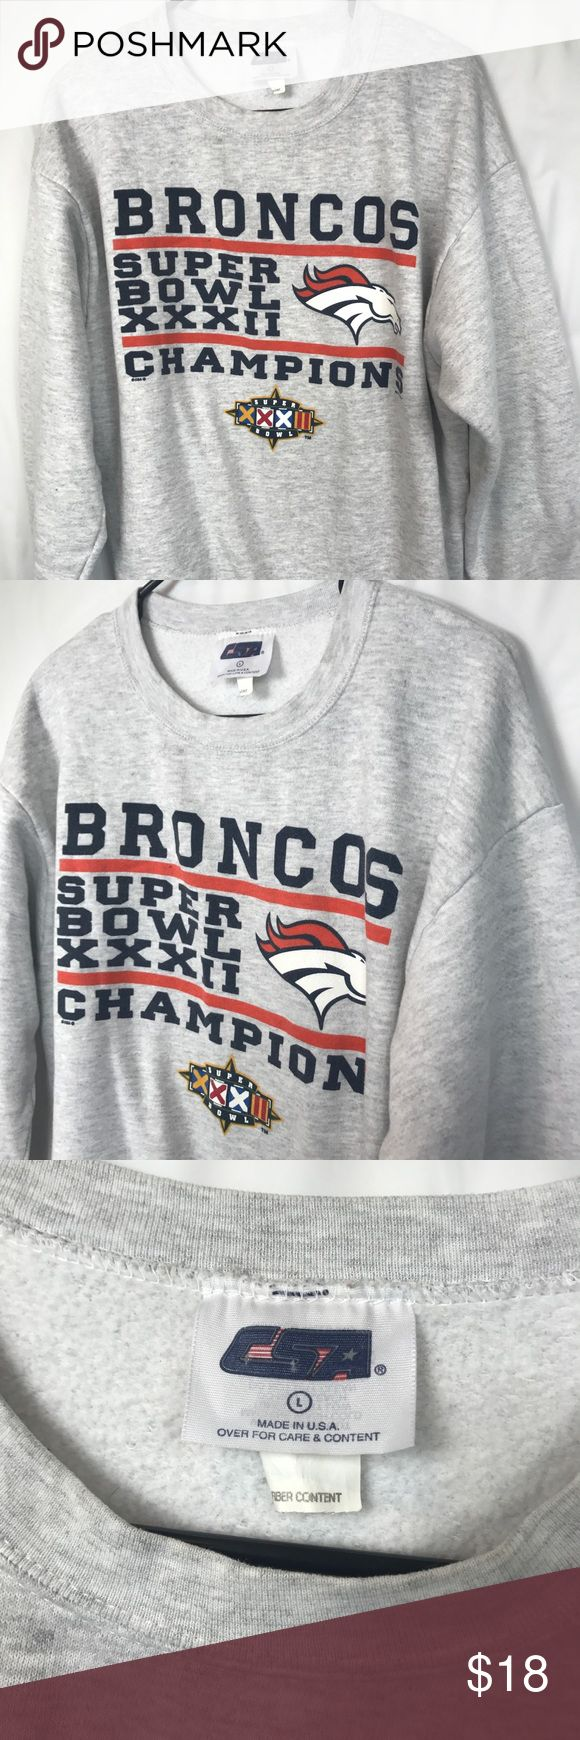 Denver Broncos Vintage 1997 Super Bowl Sweater Denver Broncos Vintage 1997 Super Bowl Sweater Pullover Crew Neck - Pit to pit: 23 - Length: 27 Sweaters Crewneck